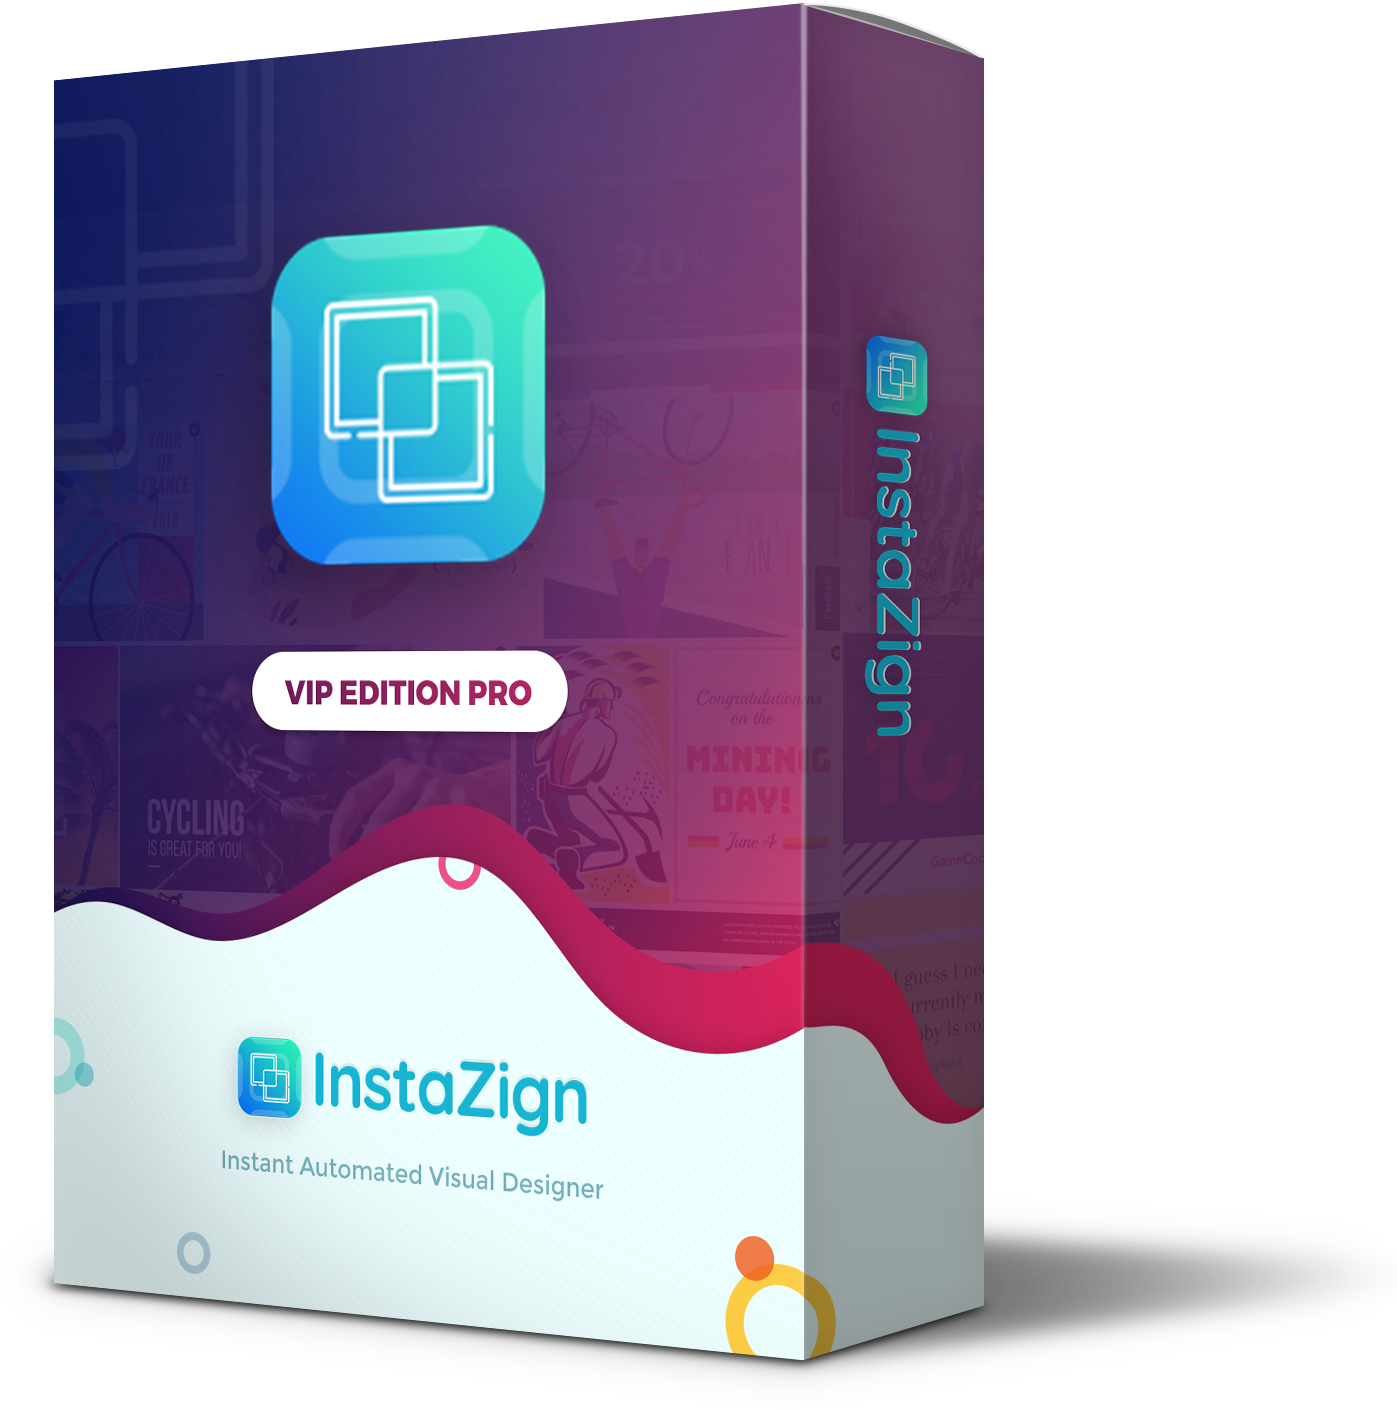 Instazign Review: *Read Here Before Buying this Product* 5